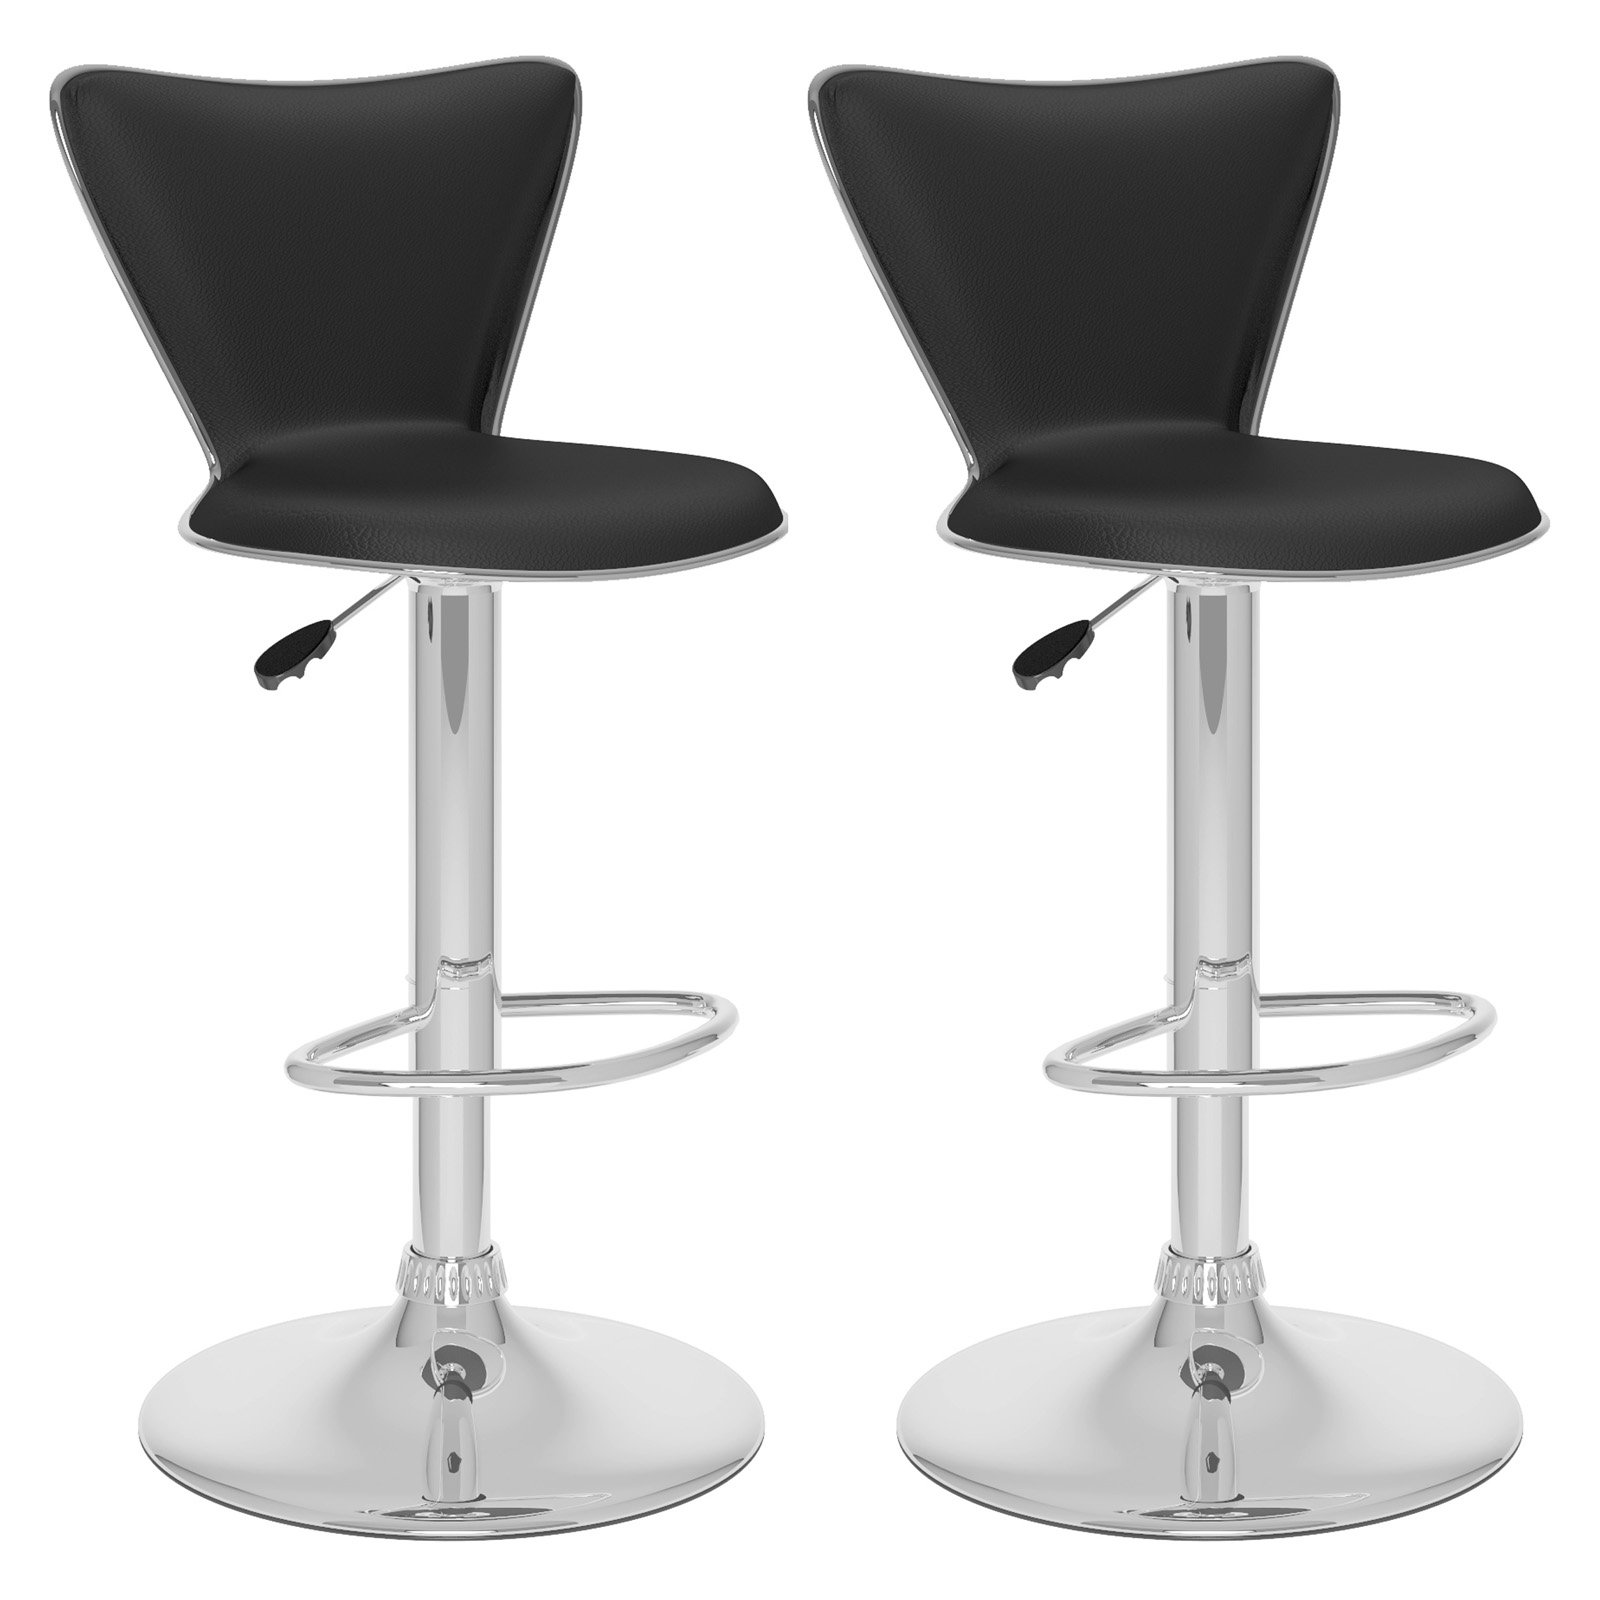 CorLiving Tall Curved Back Adjustable Barstool, set of 2